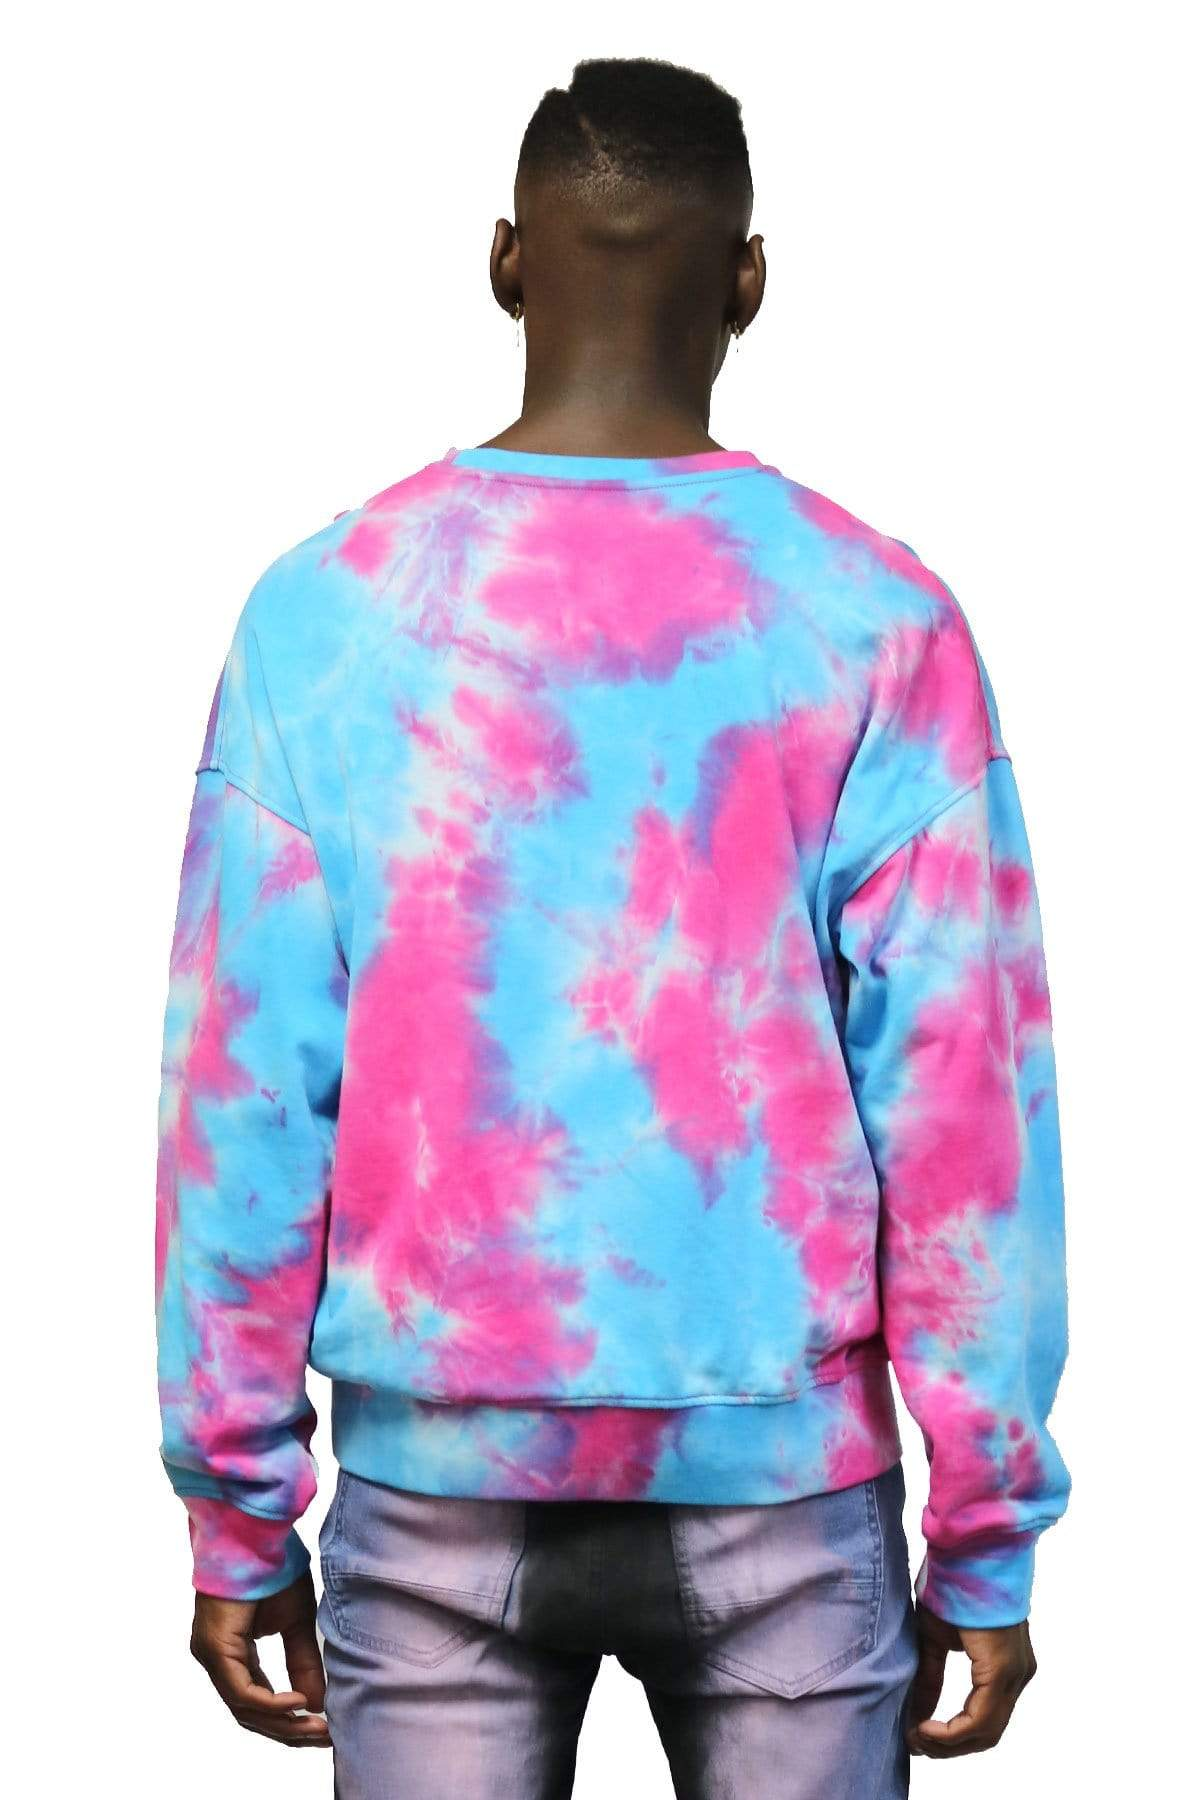 KLEEP Men's Sweatshirt Misty Rose Tie die Crewneck Pullover.